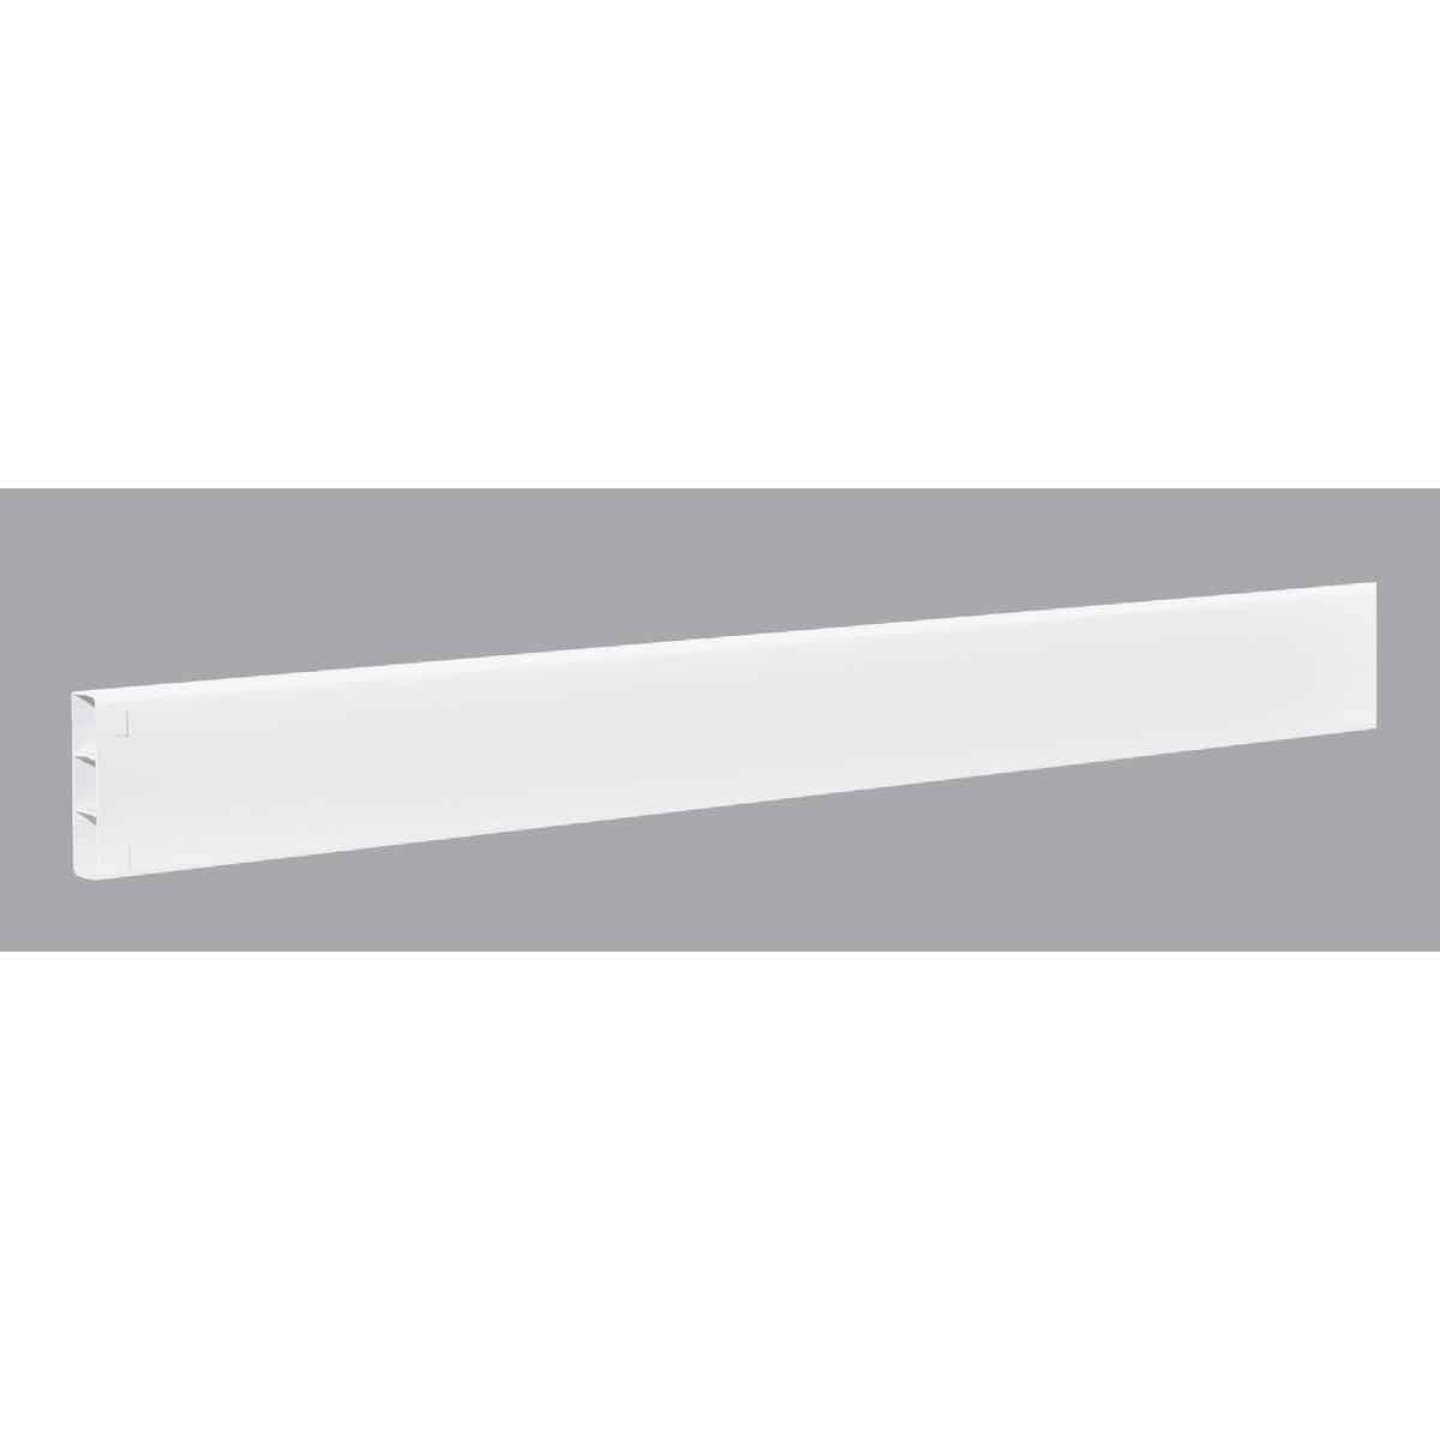 Outdoor Essentials 2 In. x 6 In. x 96 In. White Vinyl Fence Rail Image 1